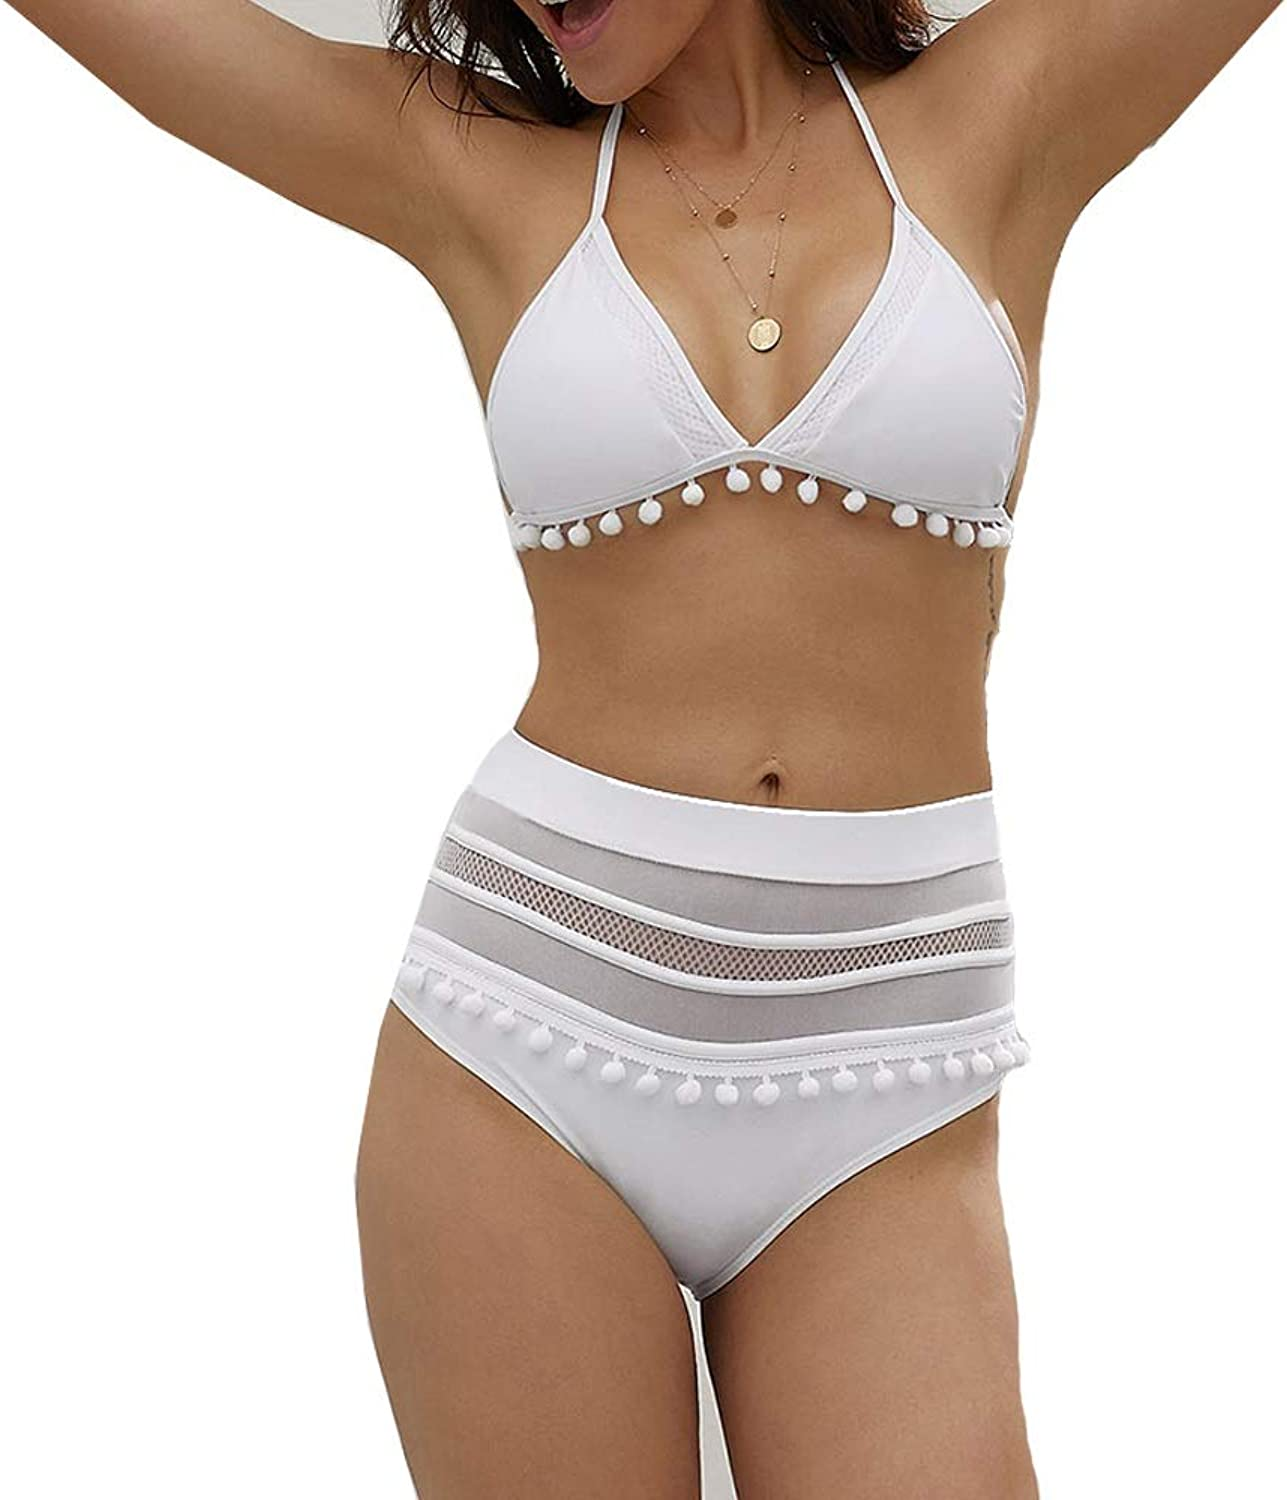 ROZKITCH Womens High Waist Halter Tie Back Two Pieces Bikini Set Padded Tassel Swimsuit